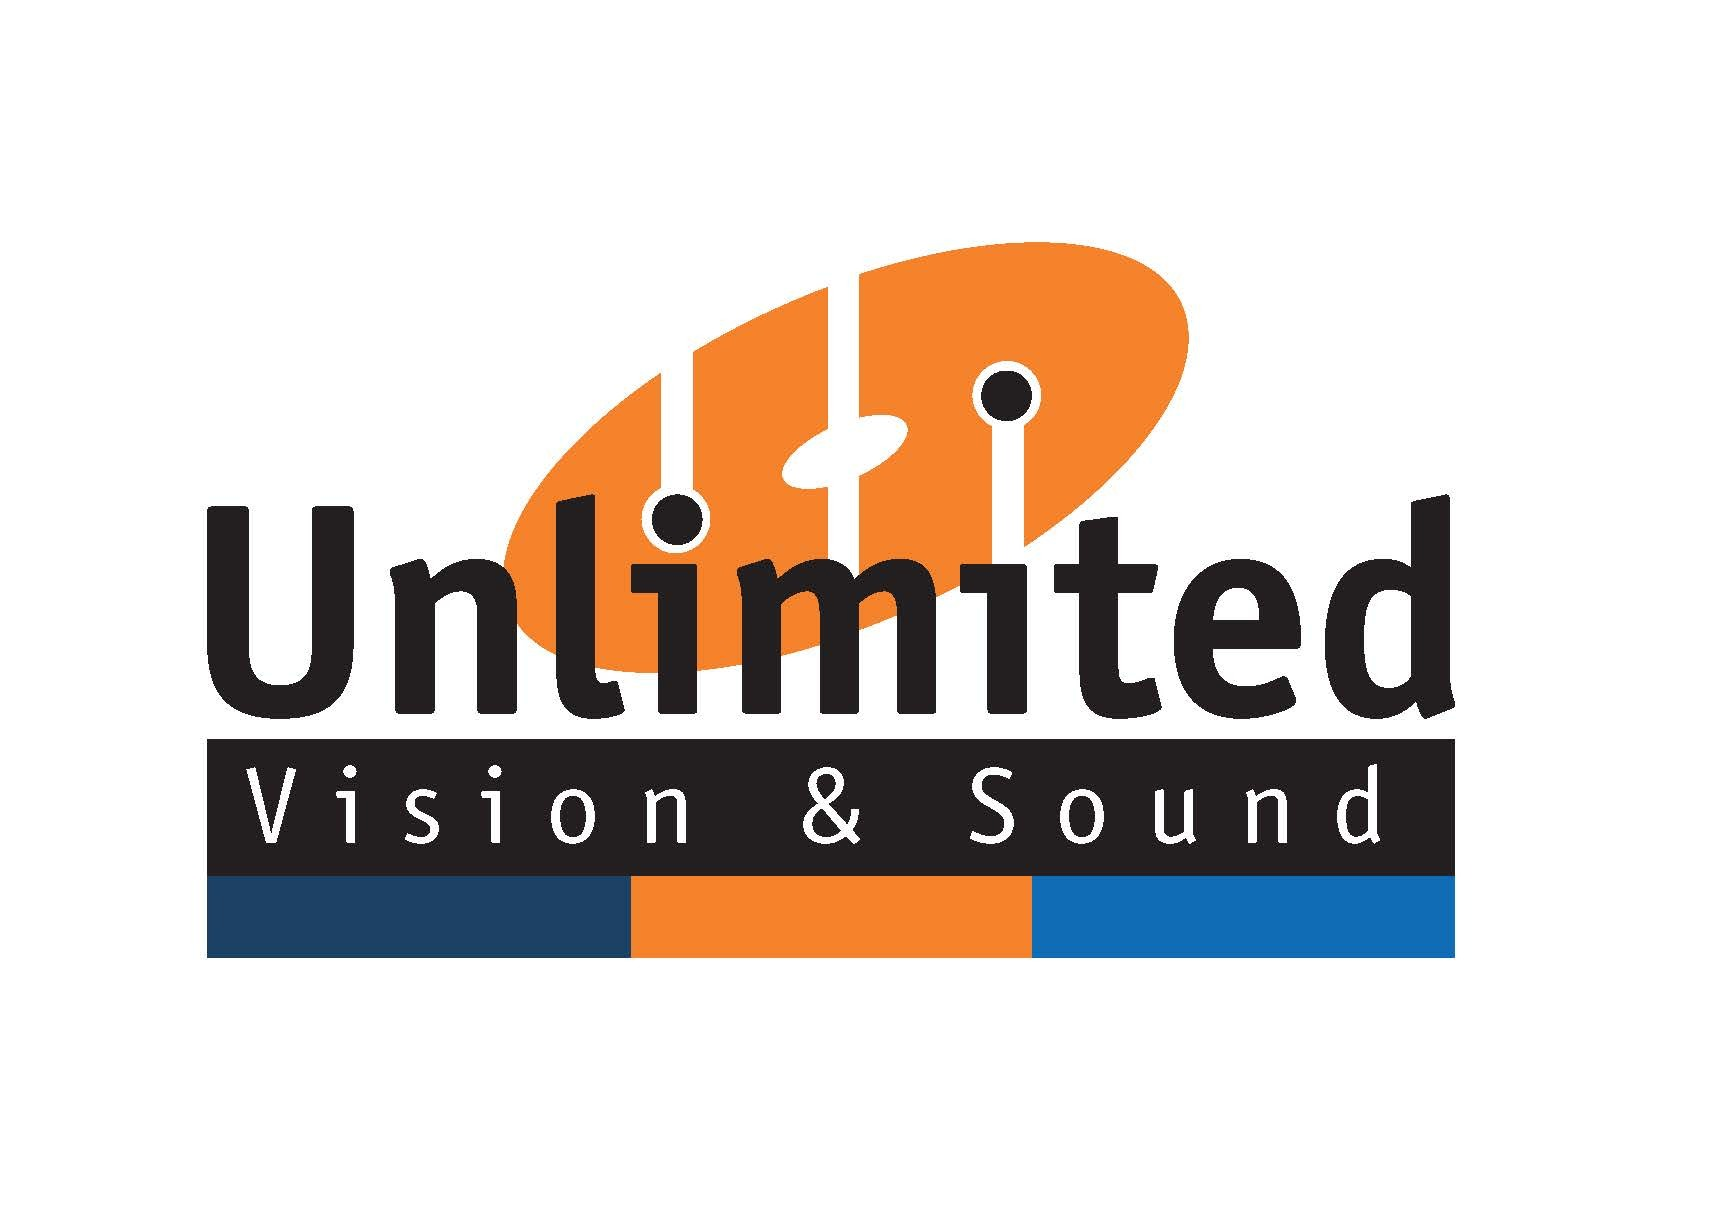 Unlimited Vision & Sound